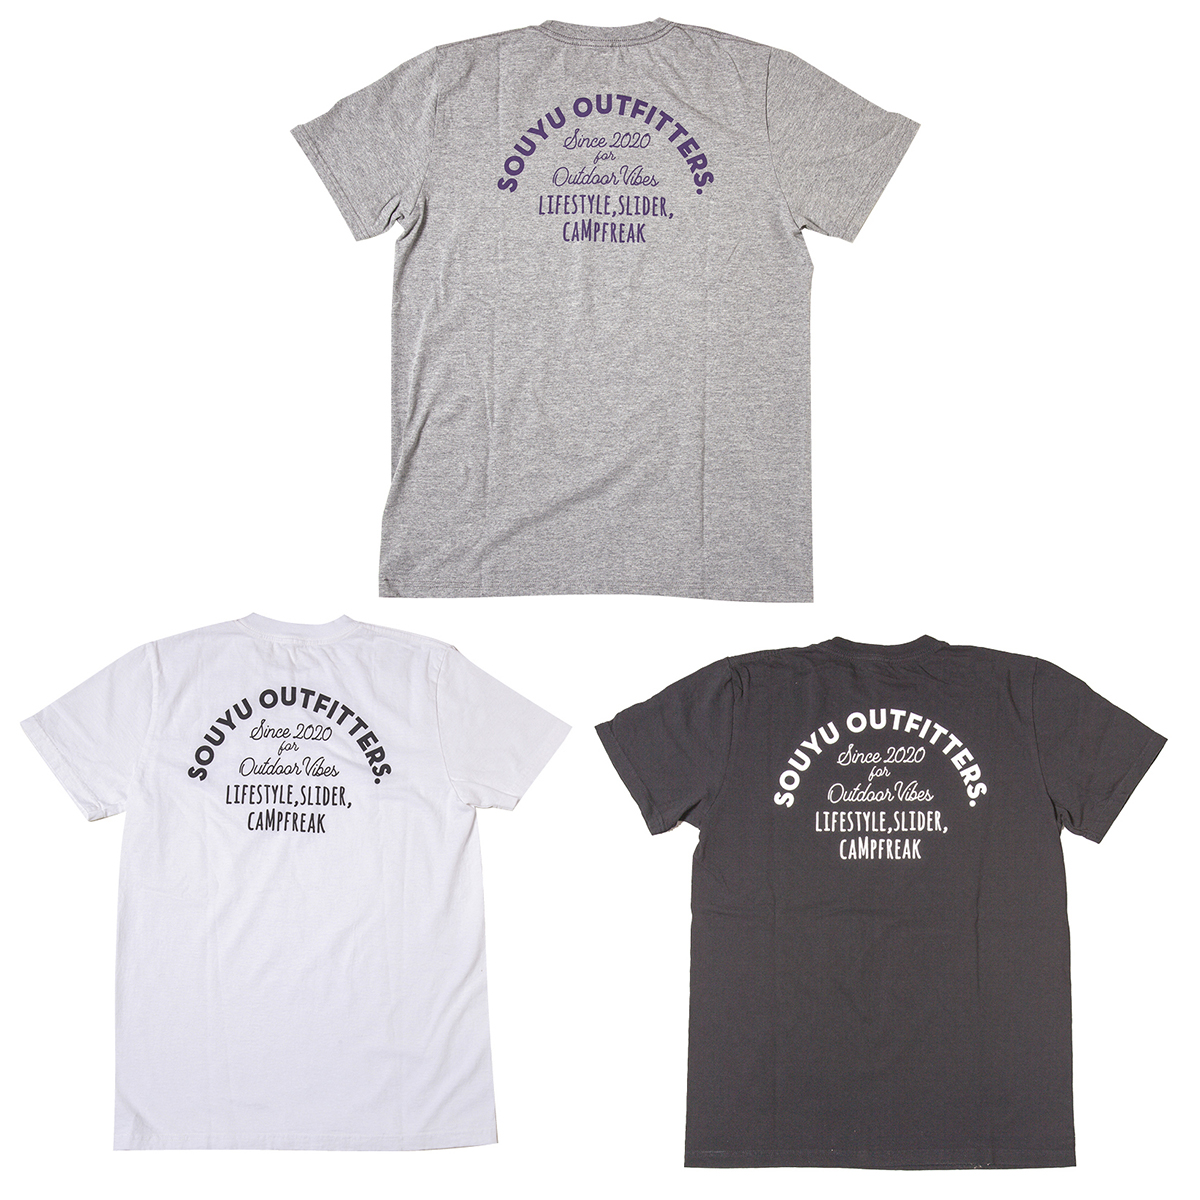 YOUR LIFESTYLE TEE ユアライフスタイル T シャツ Number : s20-so-10A Fabric : Cotton 100% Size : XS, S, M, L, XL Color:Gray Heather, White, Black Price : ¥4,800